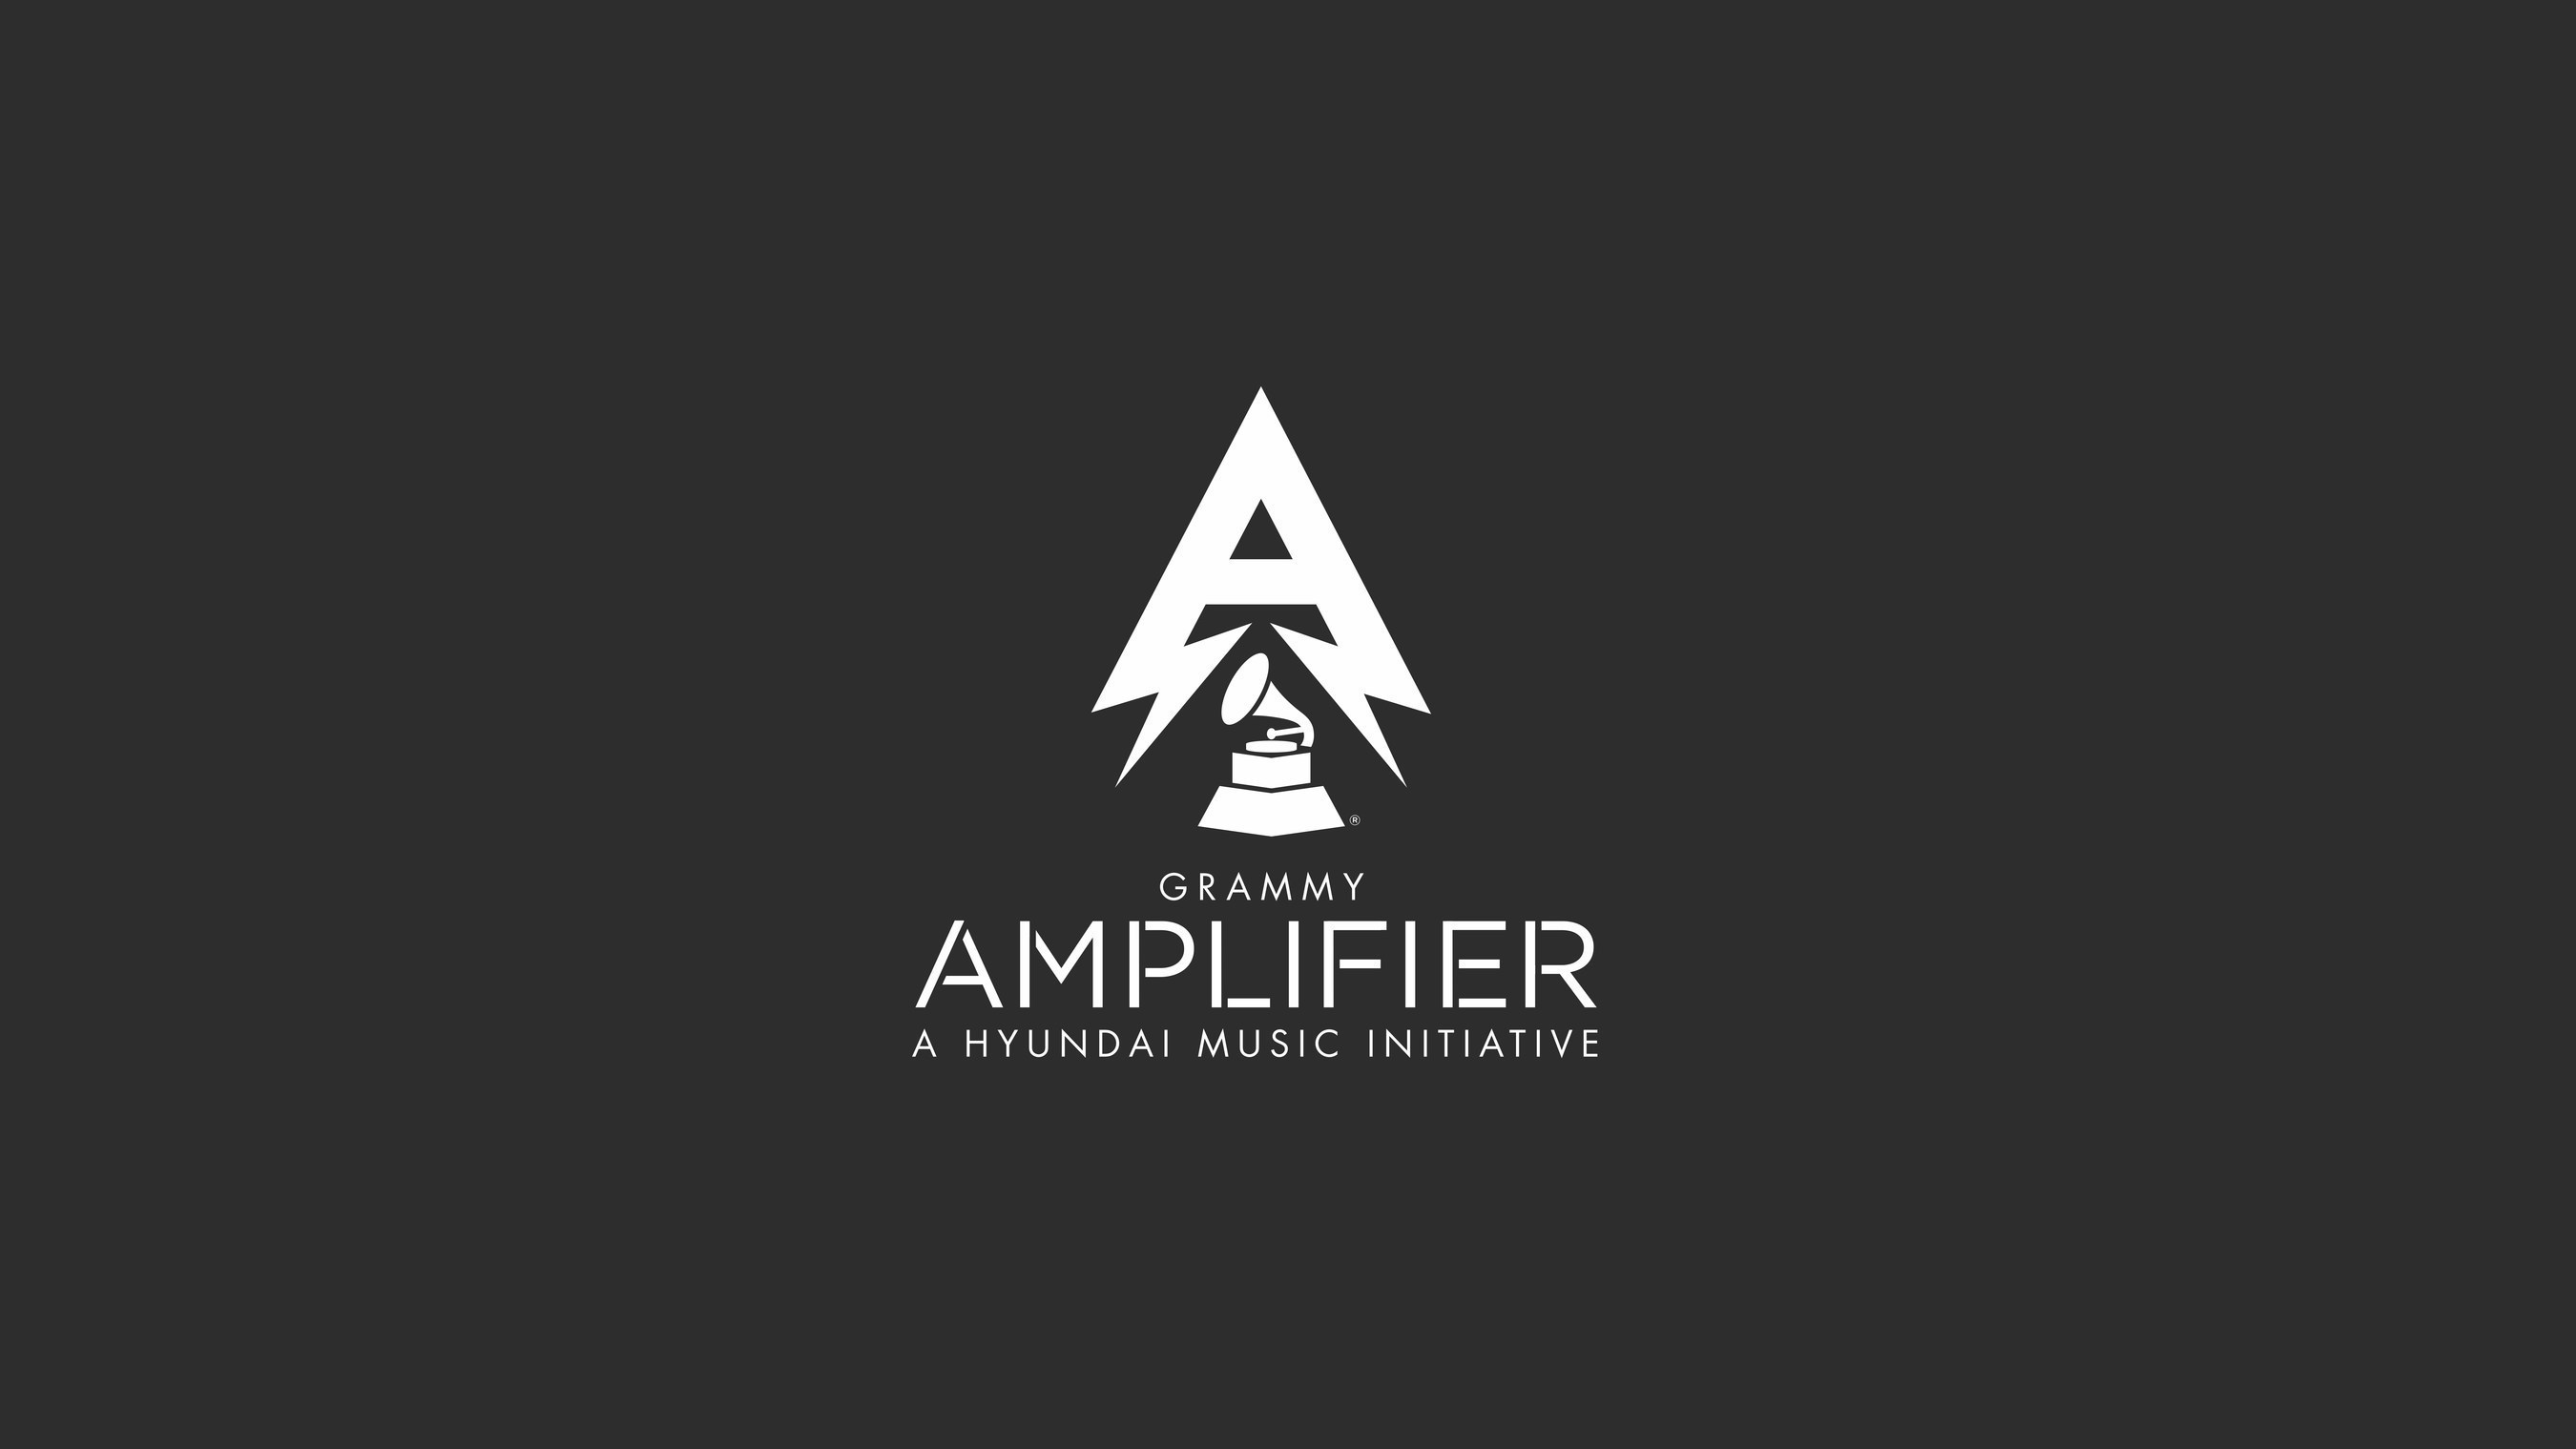 Grammy Award / Hyundai Amplifier Program Logo